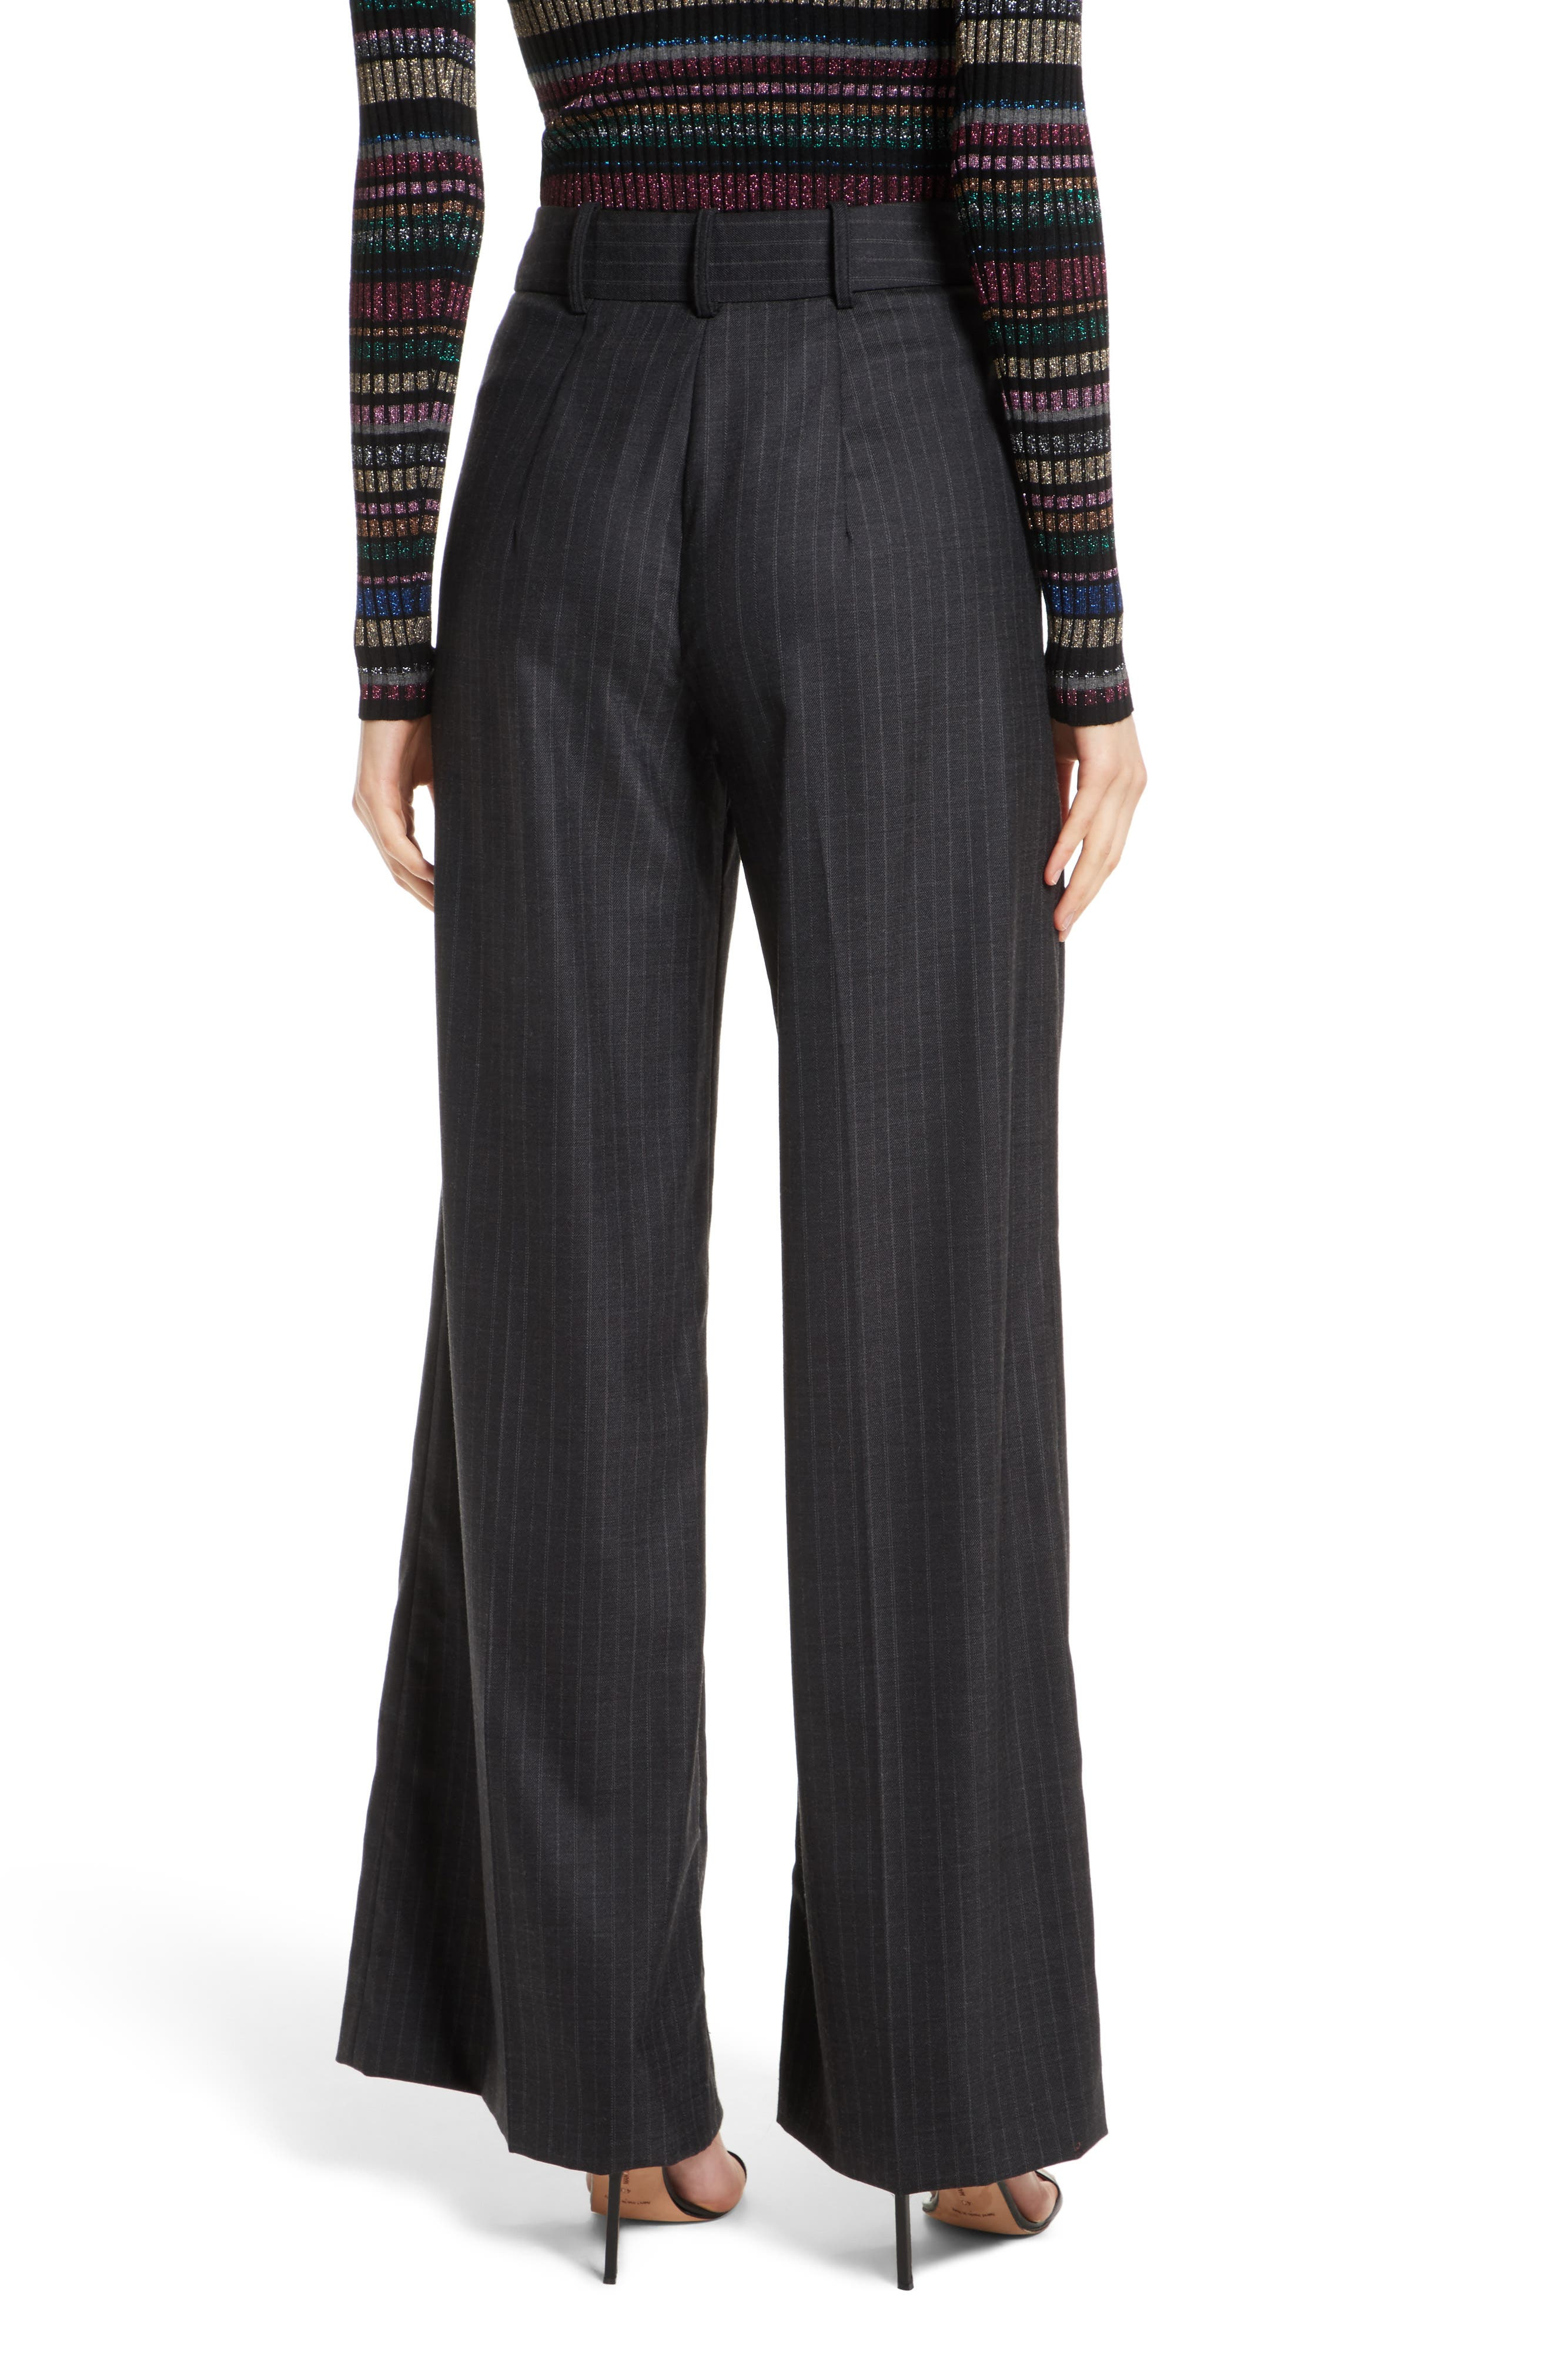 Sia Pinstripe Italian Stretch Wool Trousers,                             Alternate thumbnail 2, color,